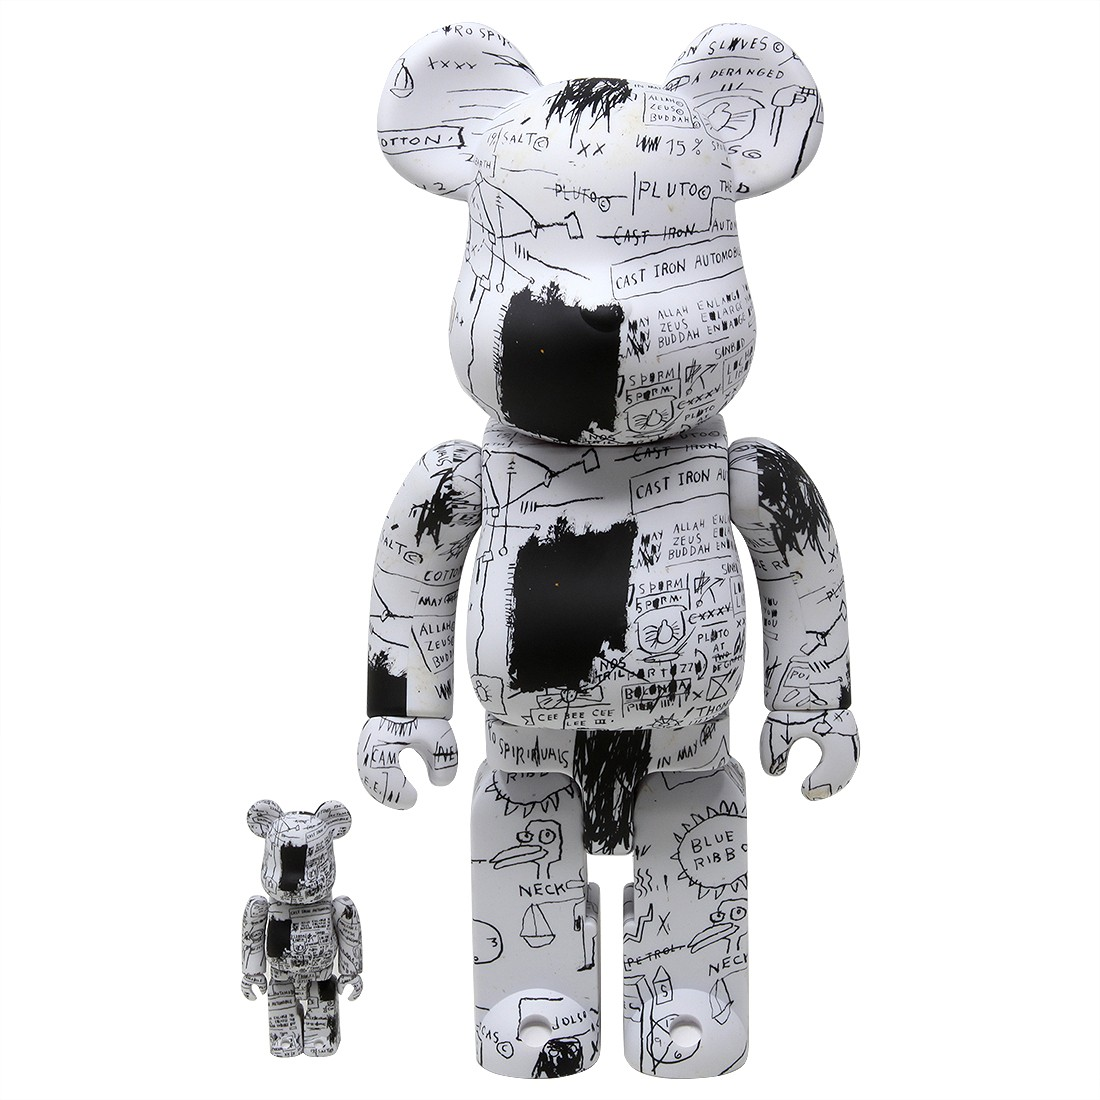 Medicom Jean-Michel Basquiat #3 100% 400% Bearbrick Figure Set (white)